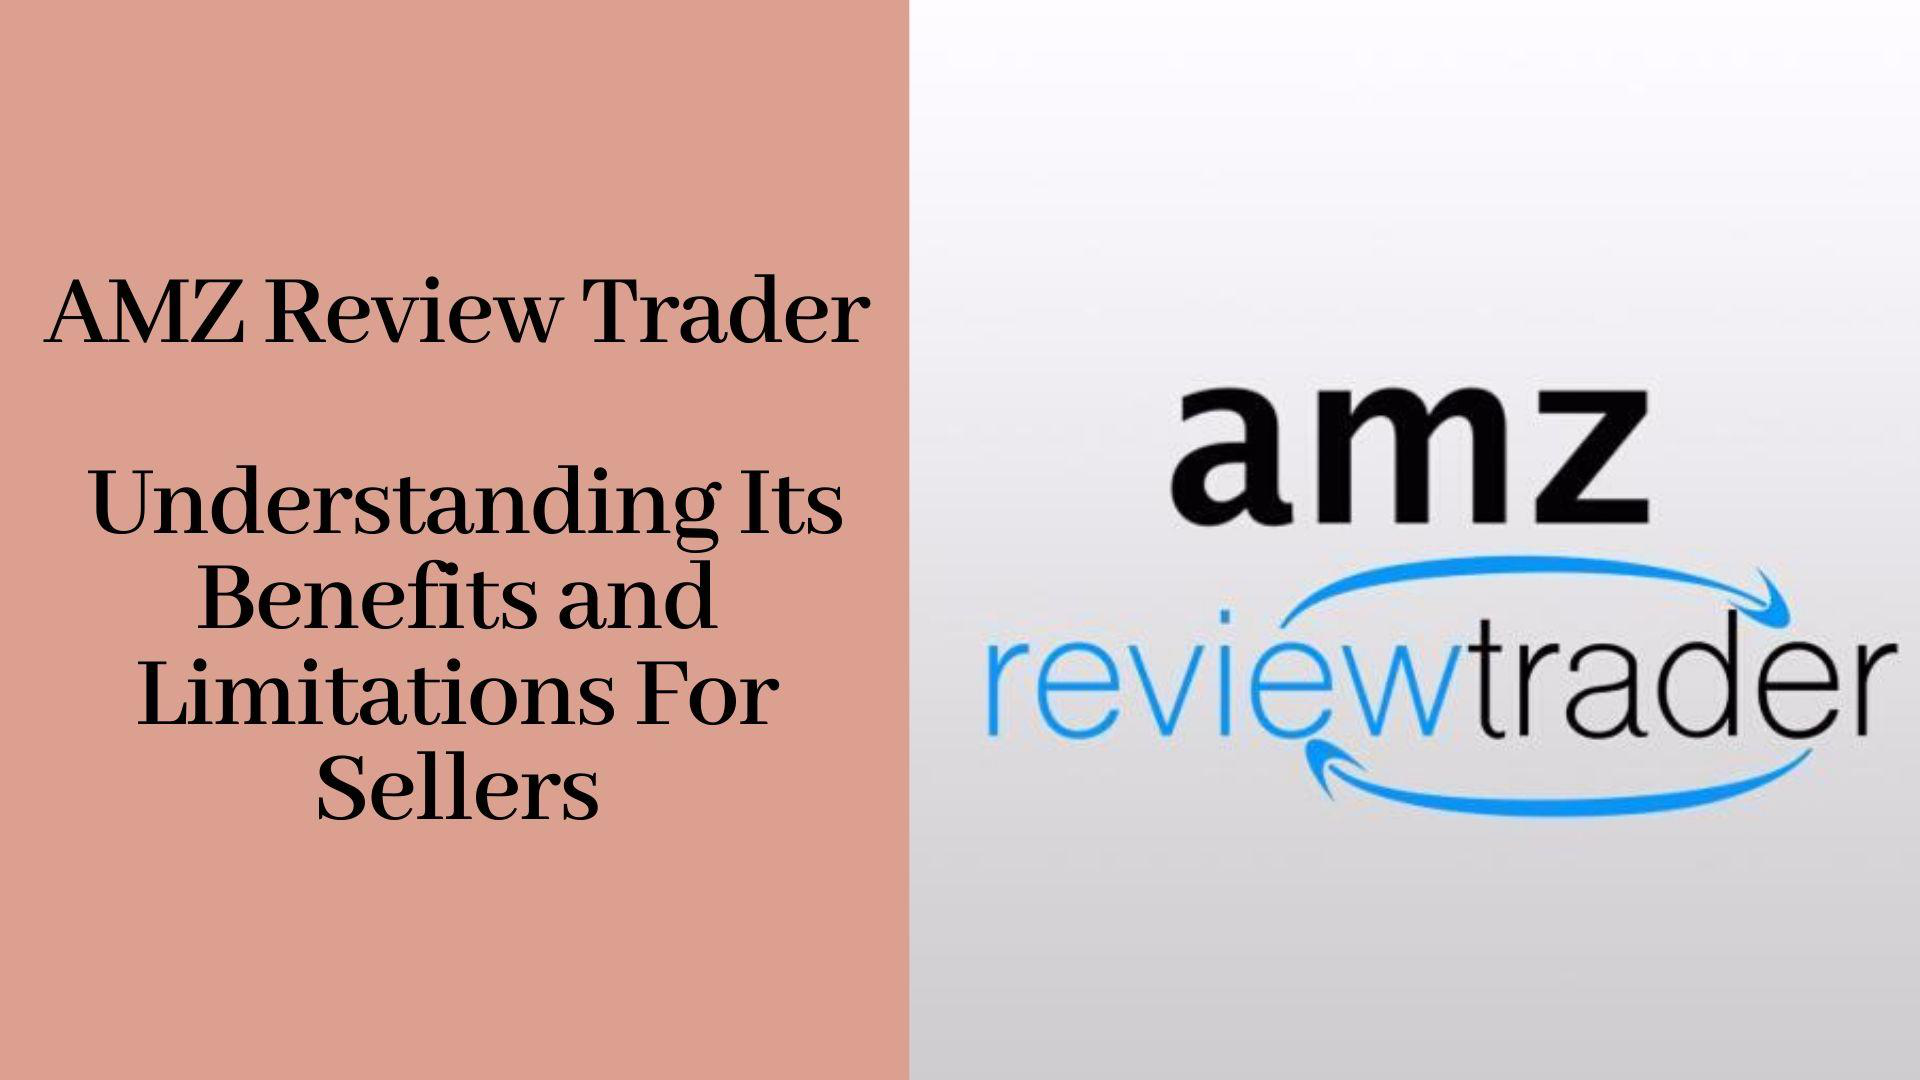 AMZ Review Trader - Benefits and Limitations.png